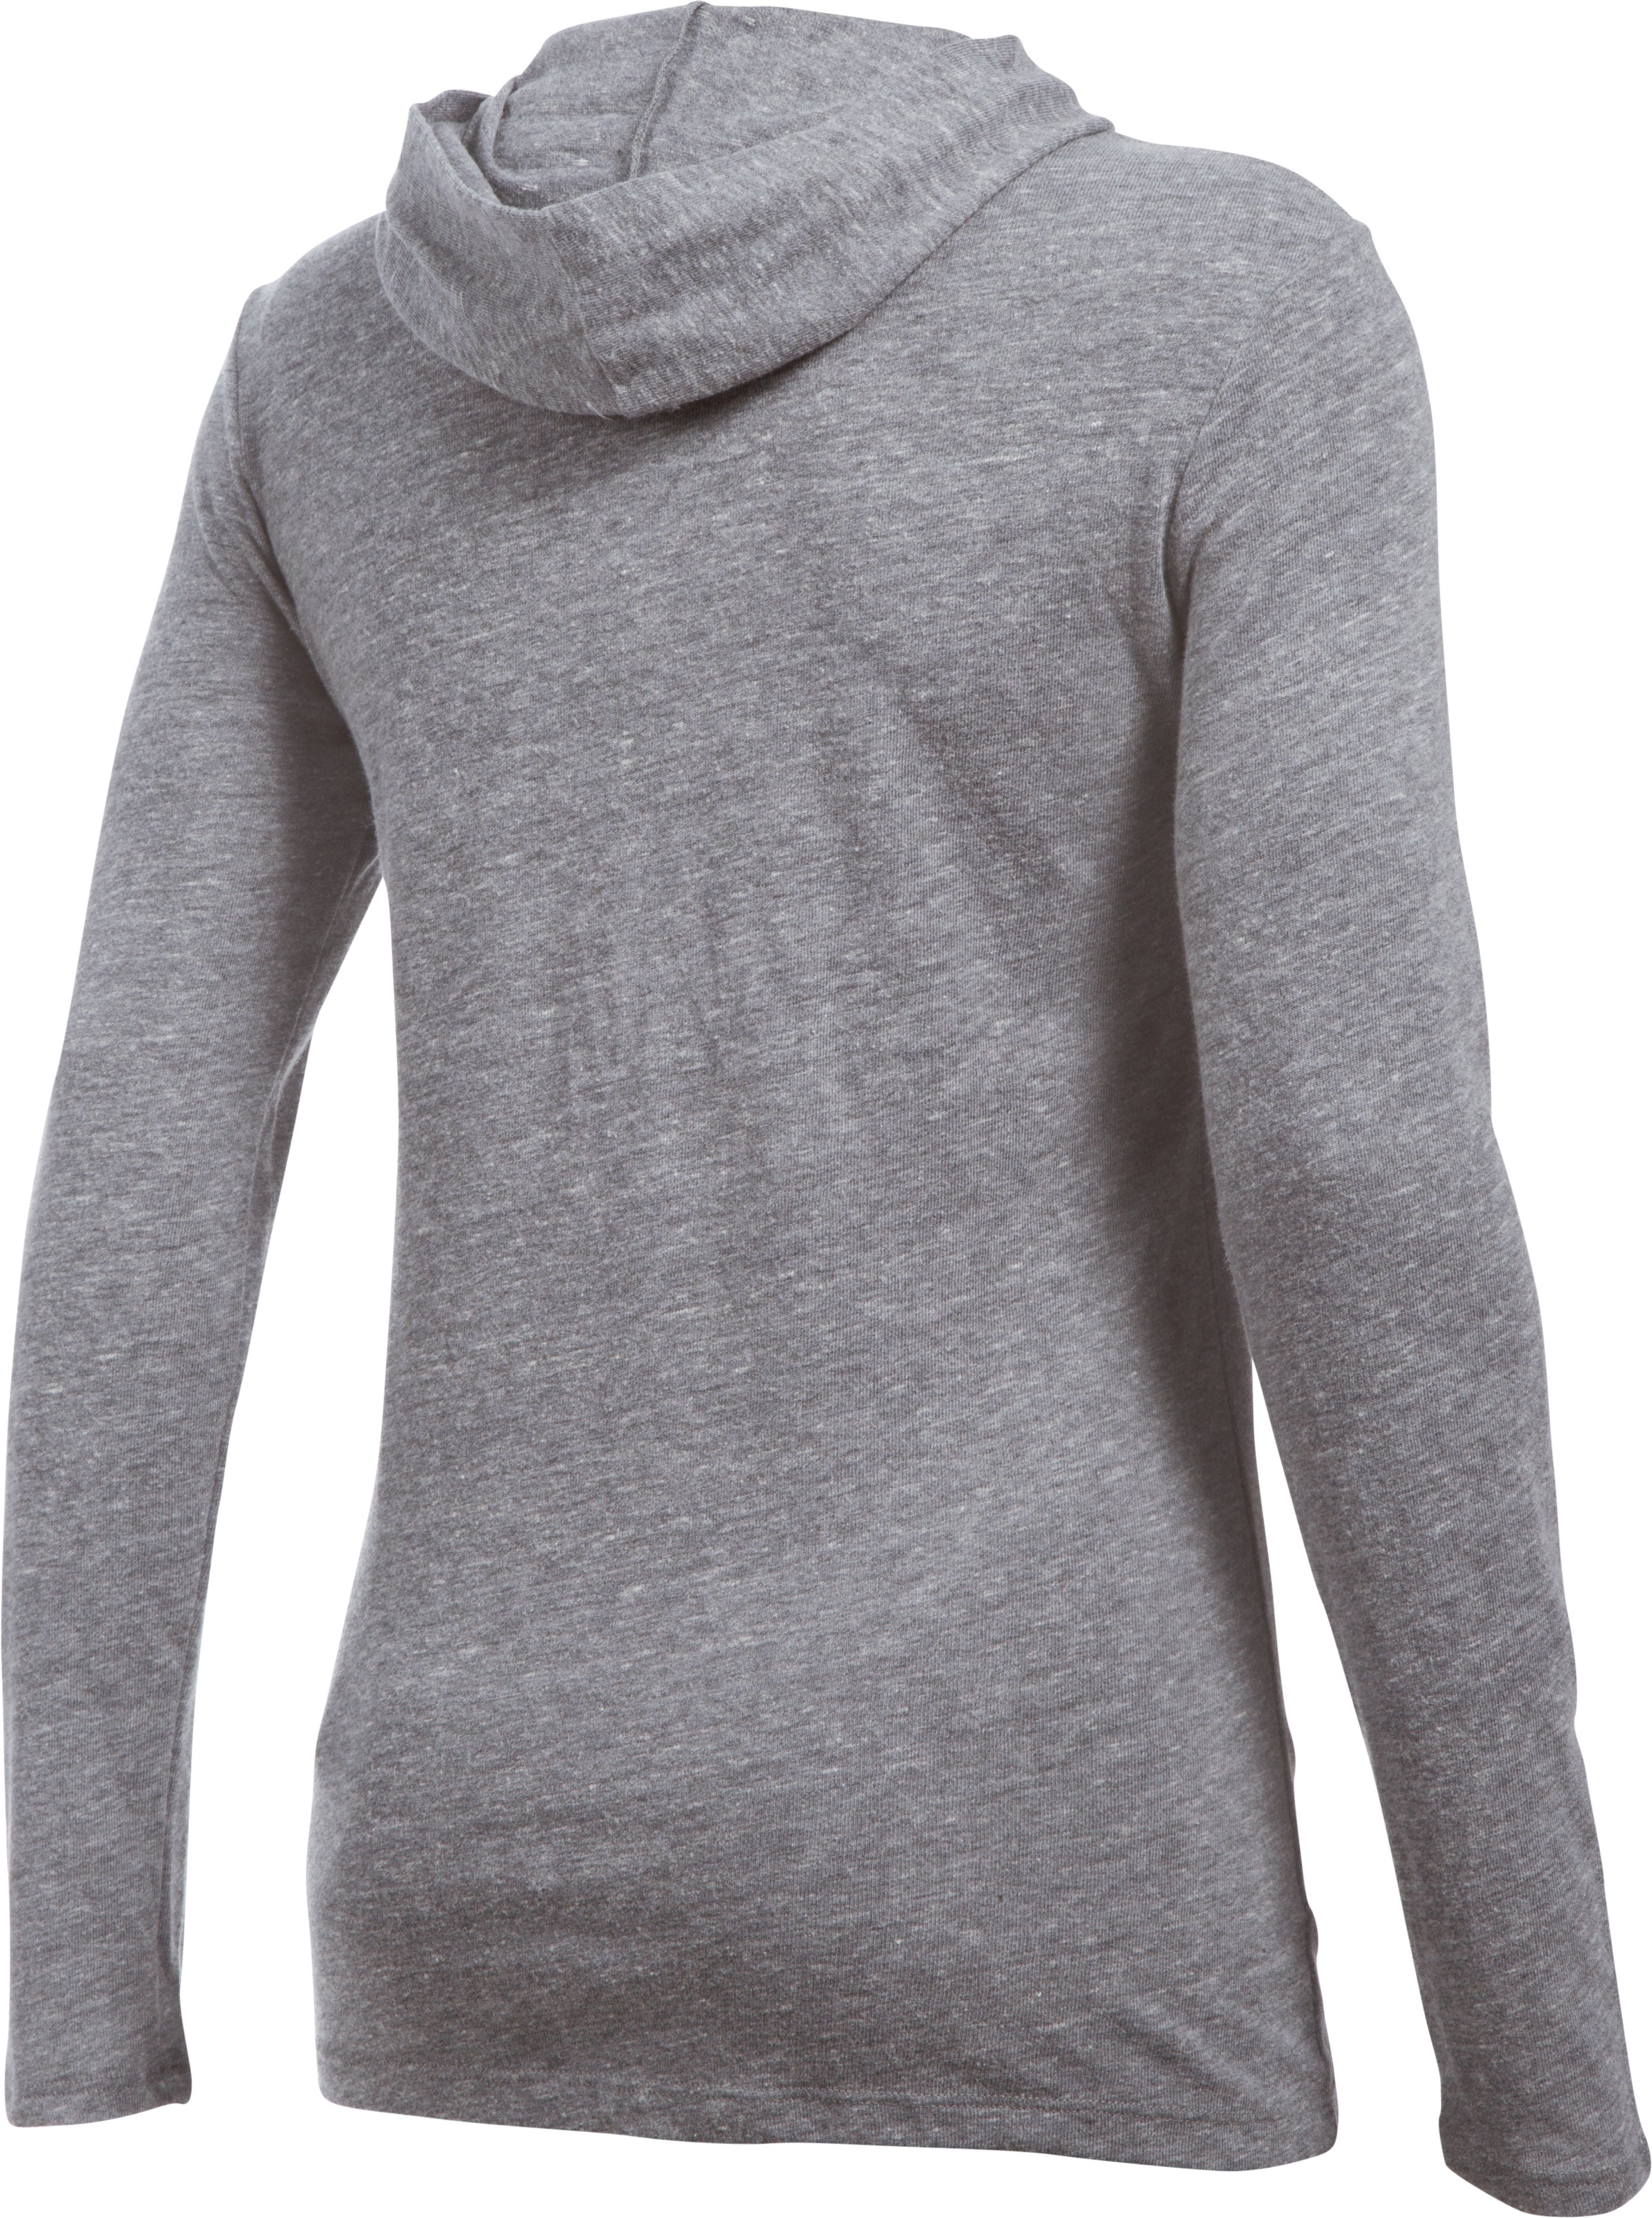 Women's South Florida UA Charged Cotton® Tri-Blend Hoodie, LEGACY GRAY HEATHER,